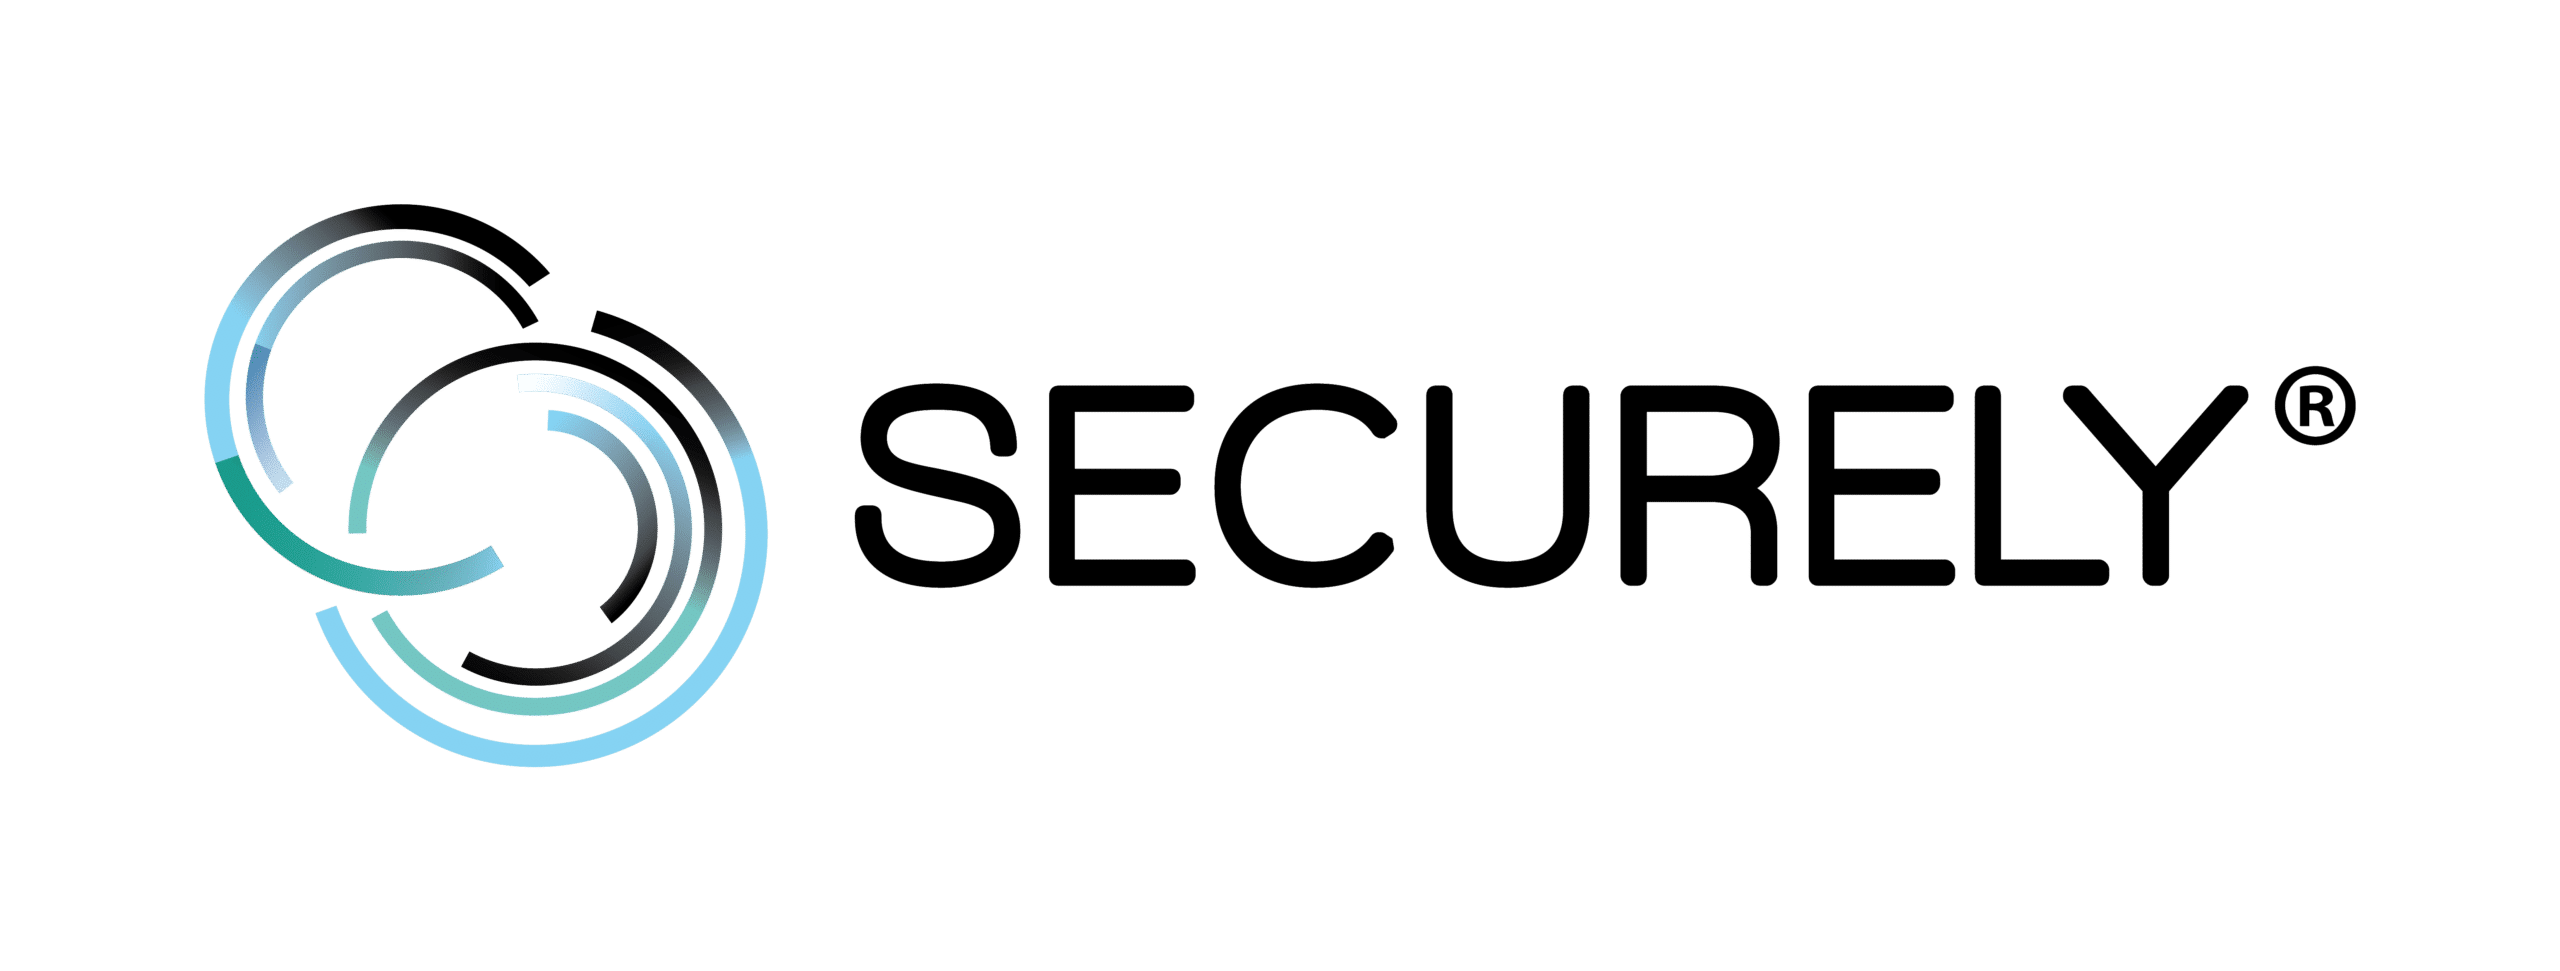 Securely NZ